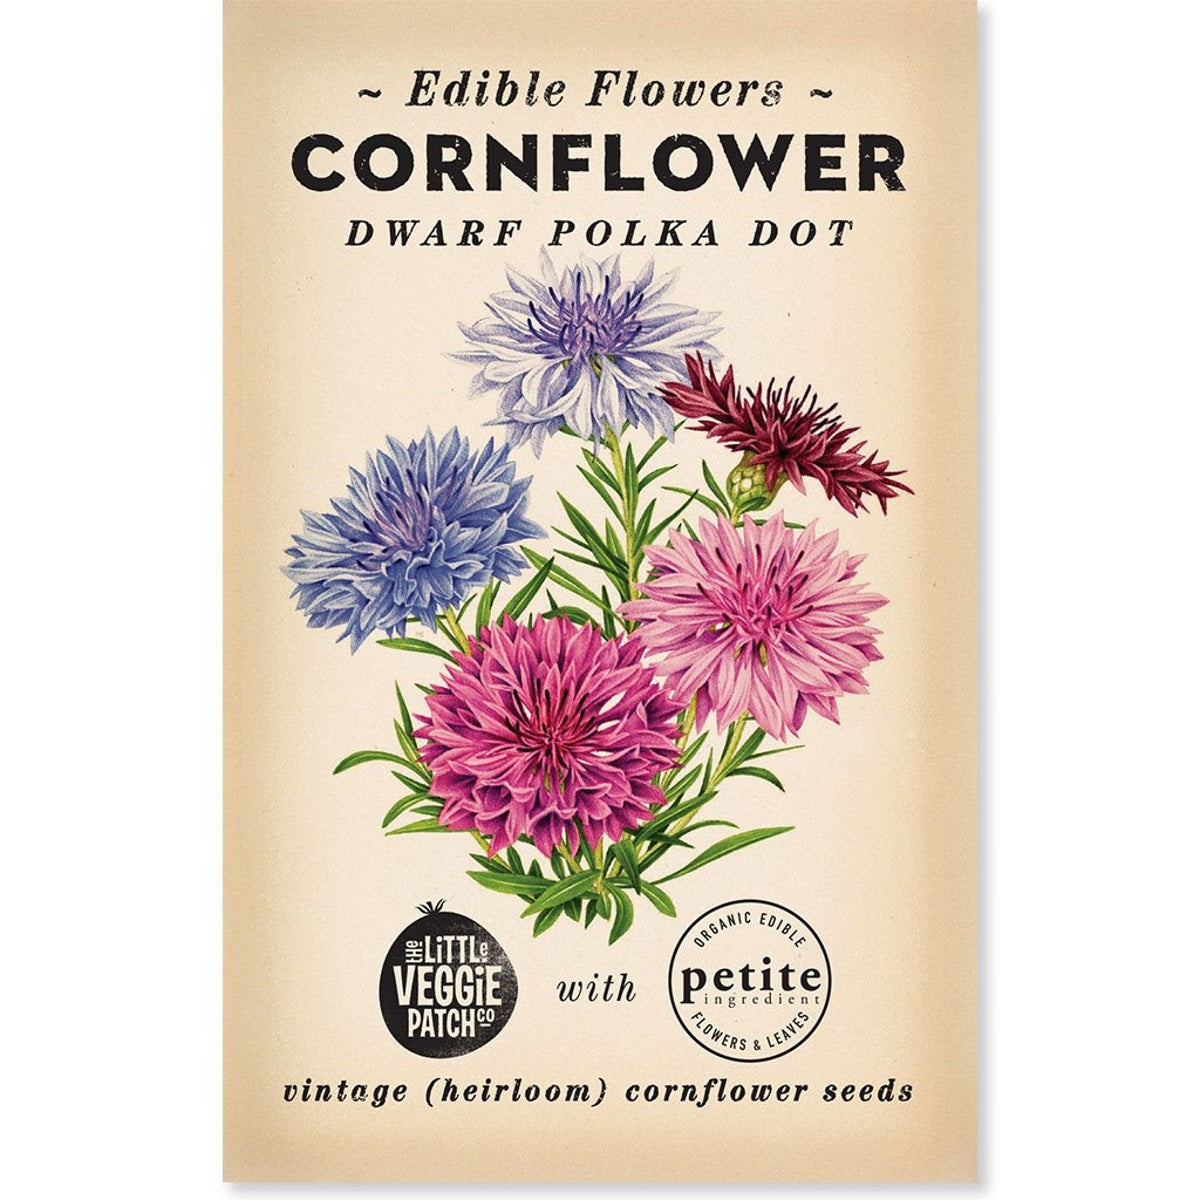 Vintage Cornflower Poster - Posters - Throw Some Seeds - Australian gardening gifts and eco products online!